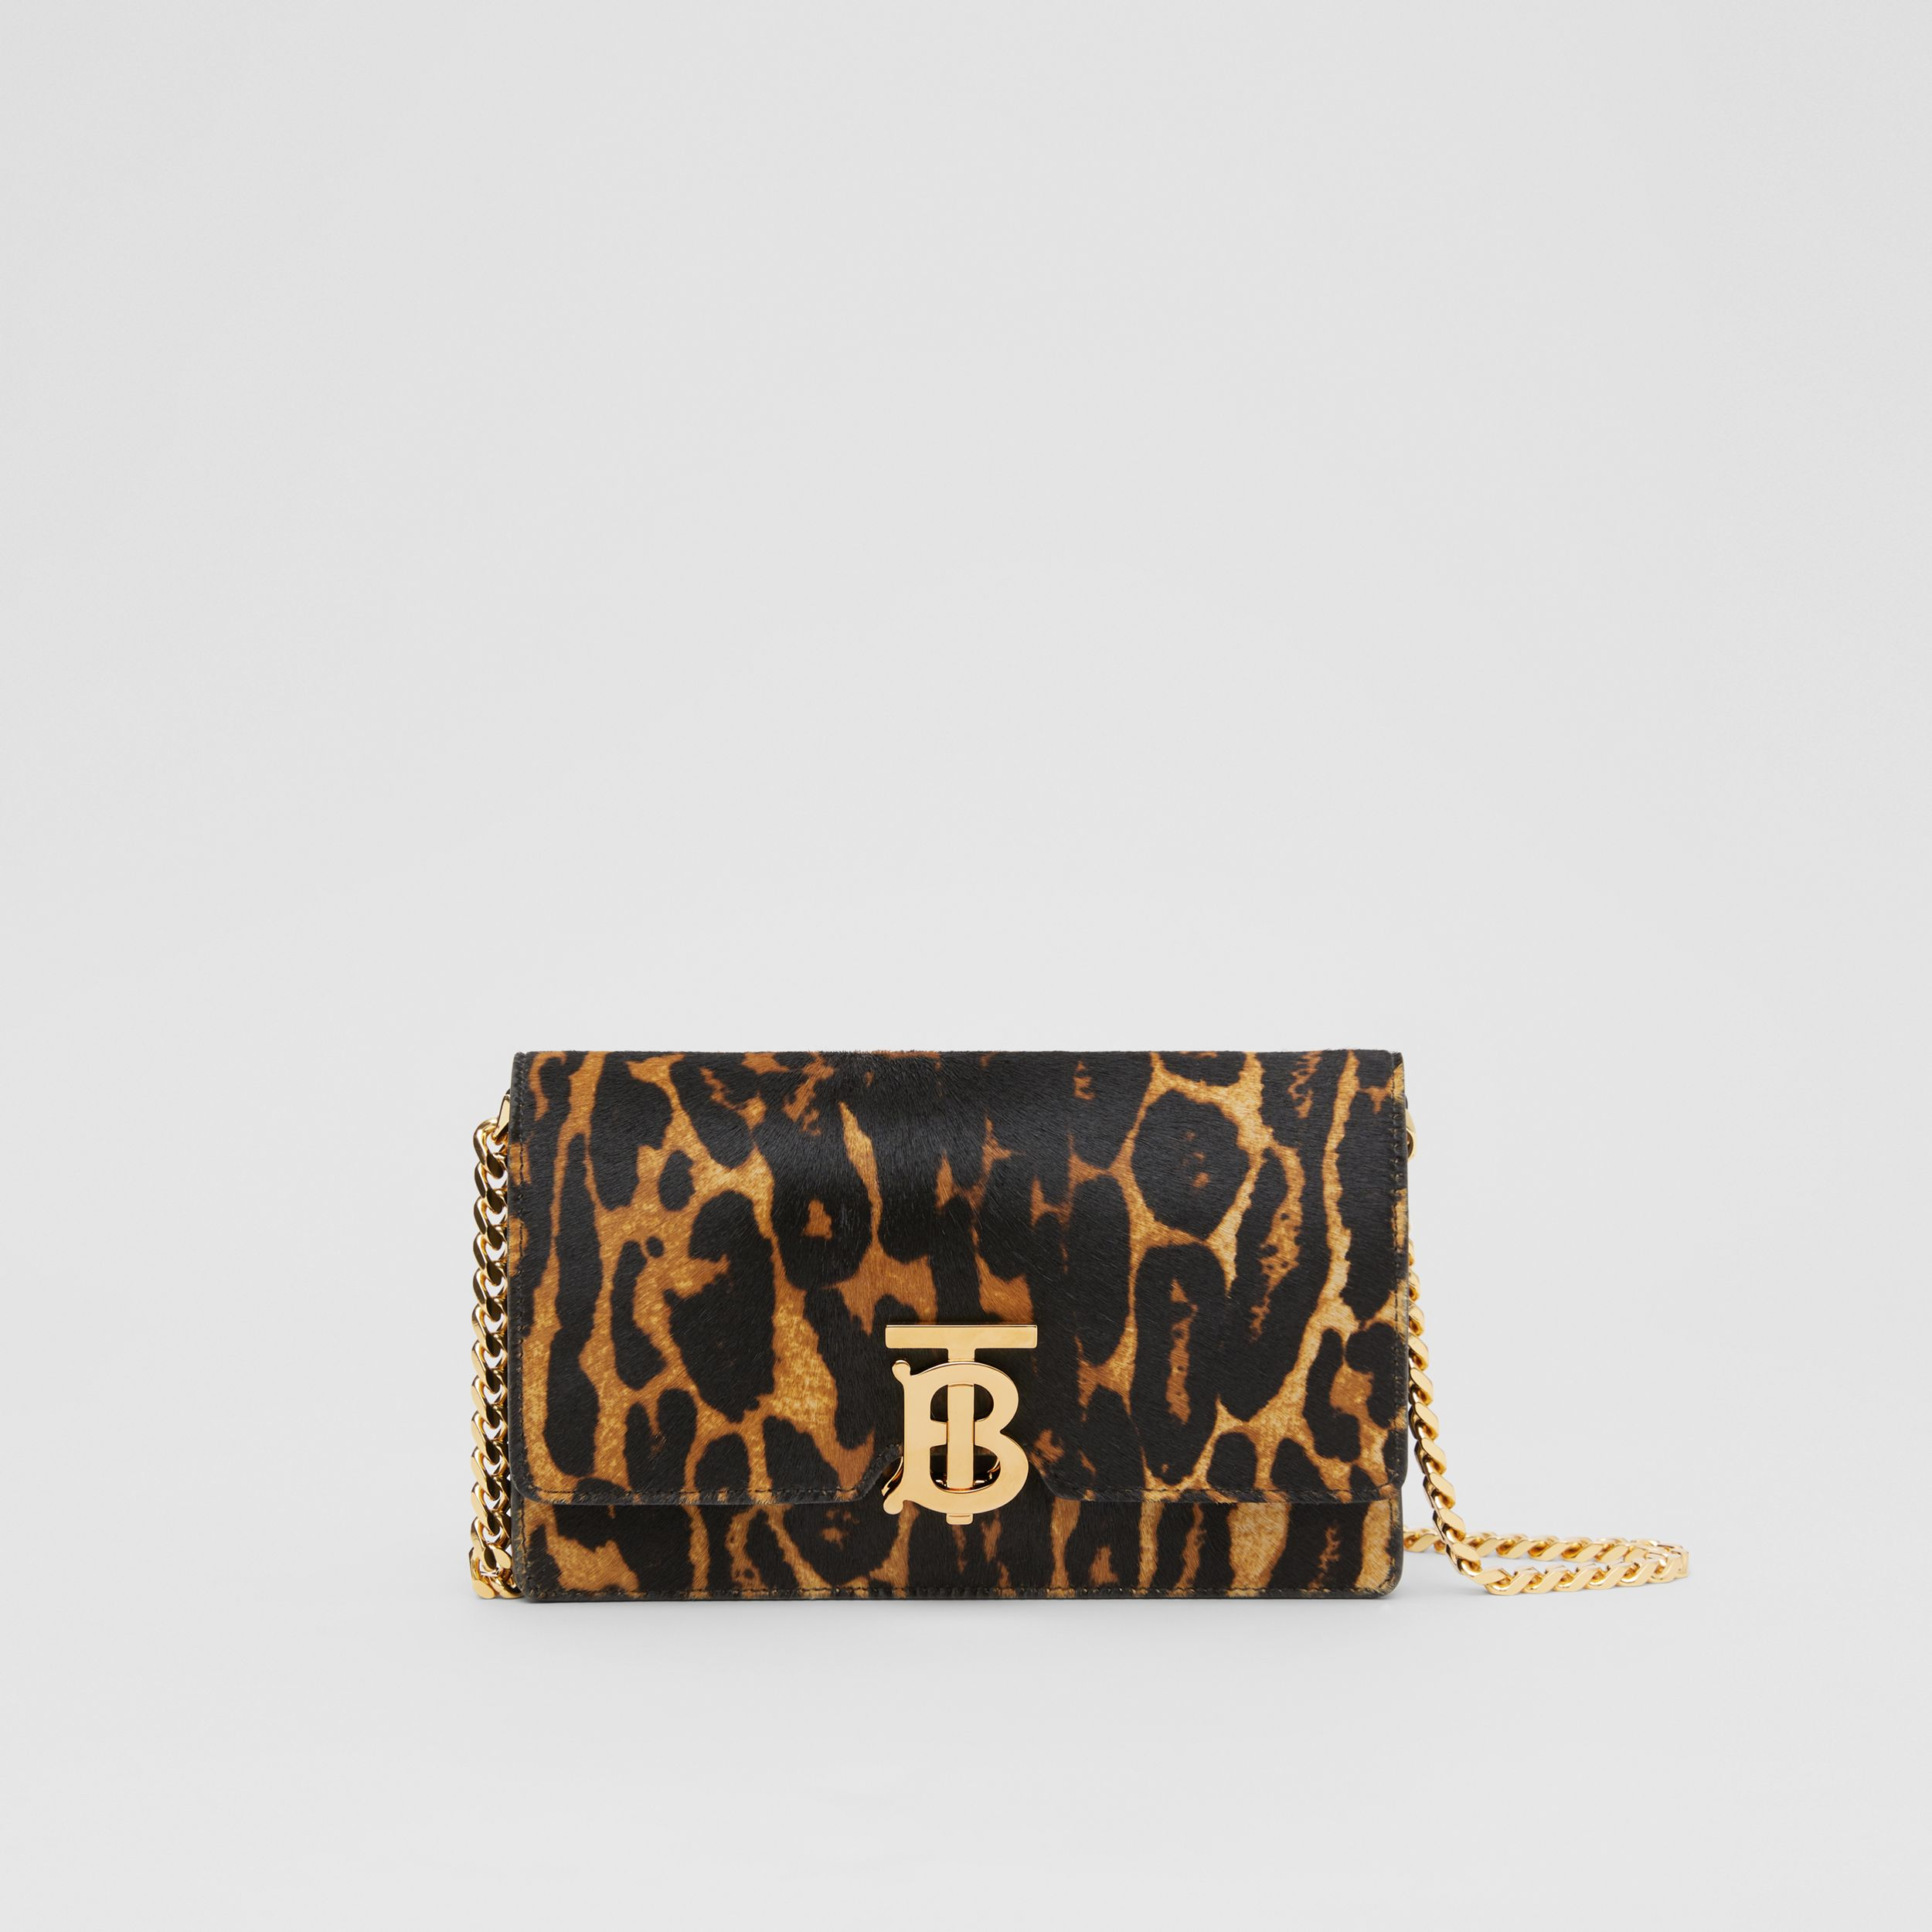 Small Leopard Print Calf Hair Shoulder Bag in Dark Mustard - Women | Burberry United States - 1